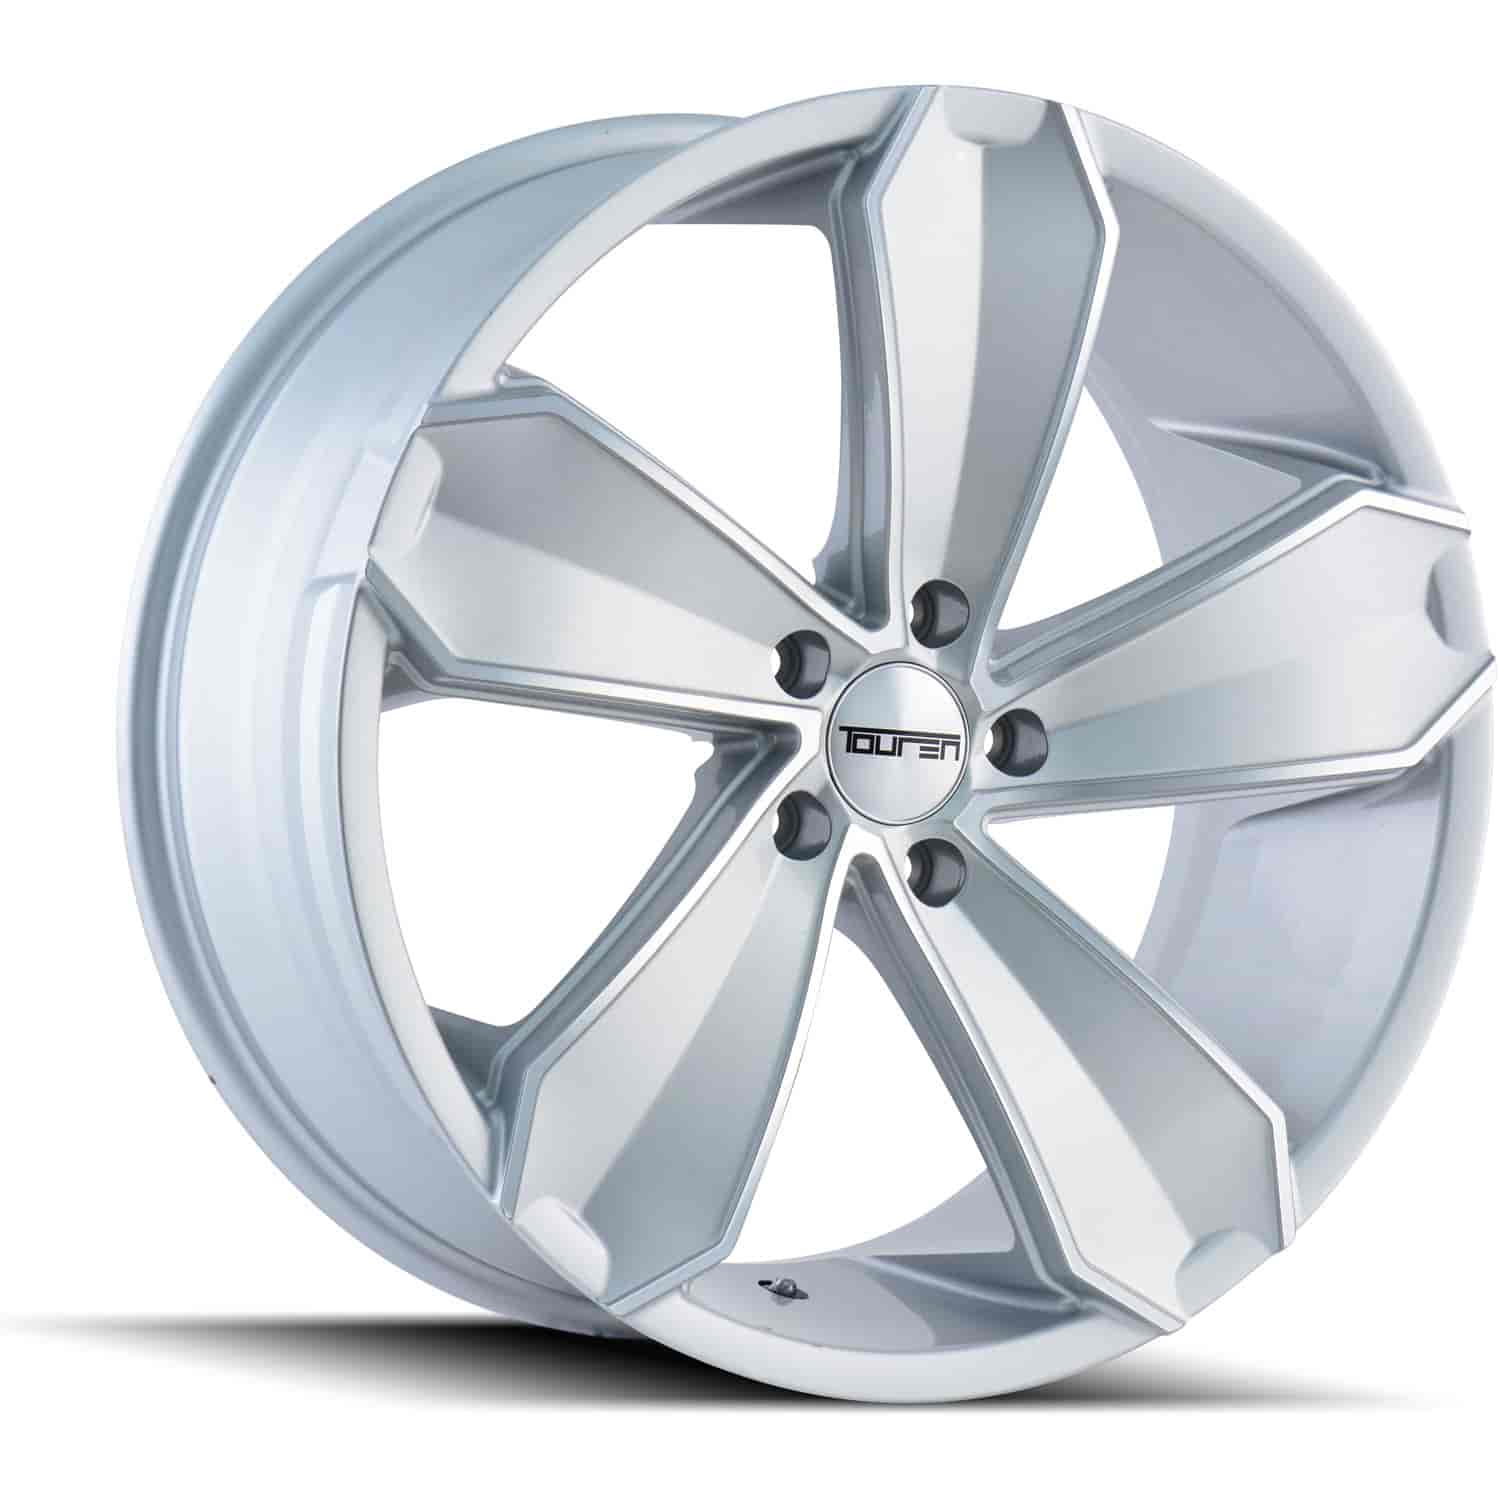 The Wheel Group 3271-2165S40